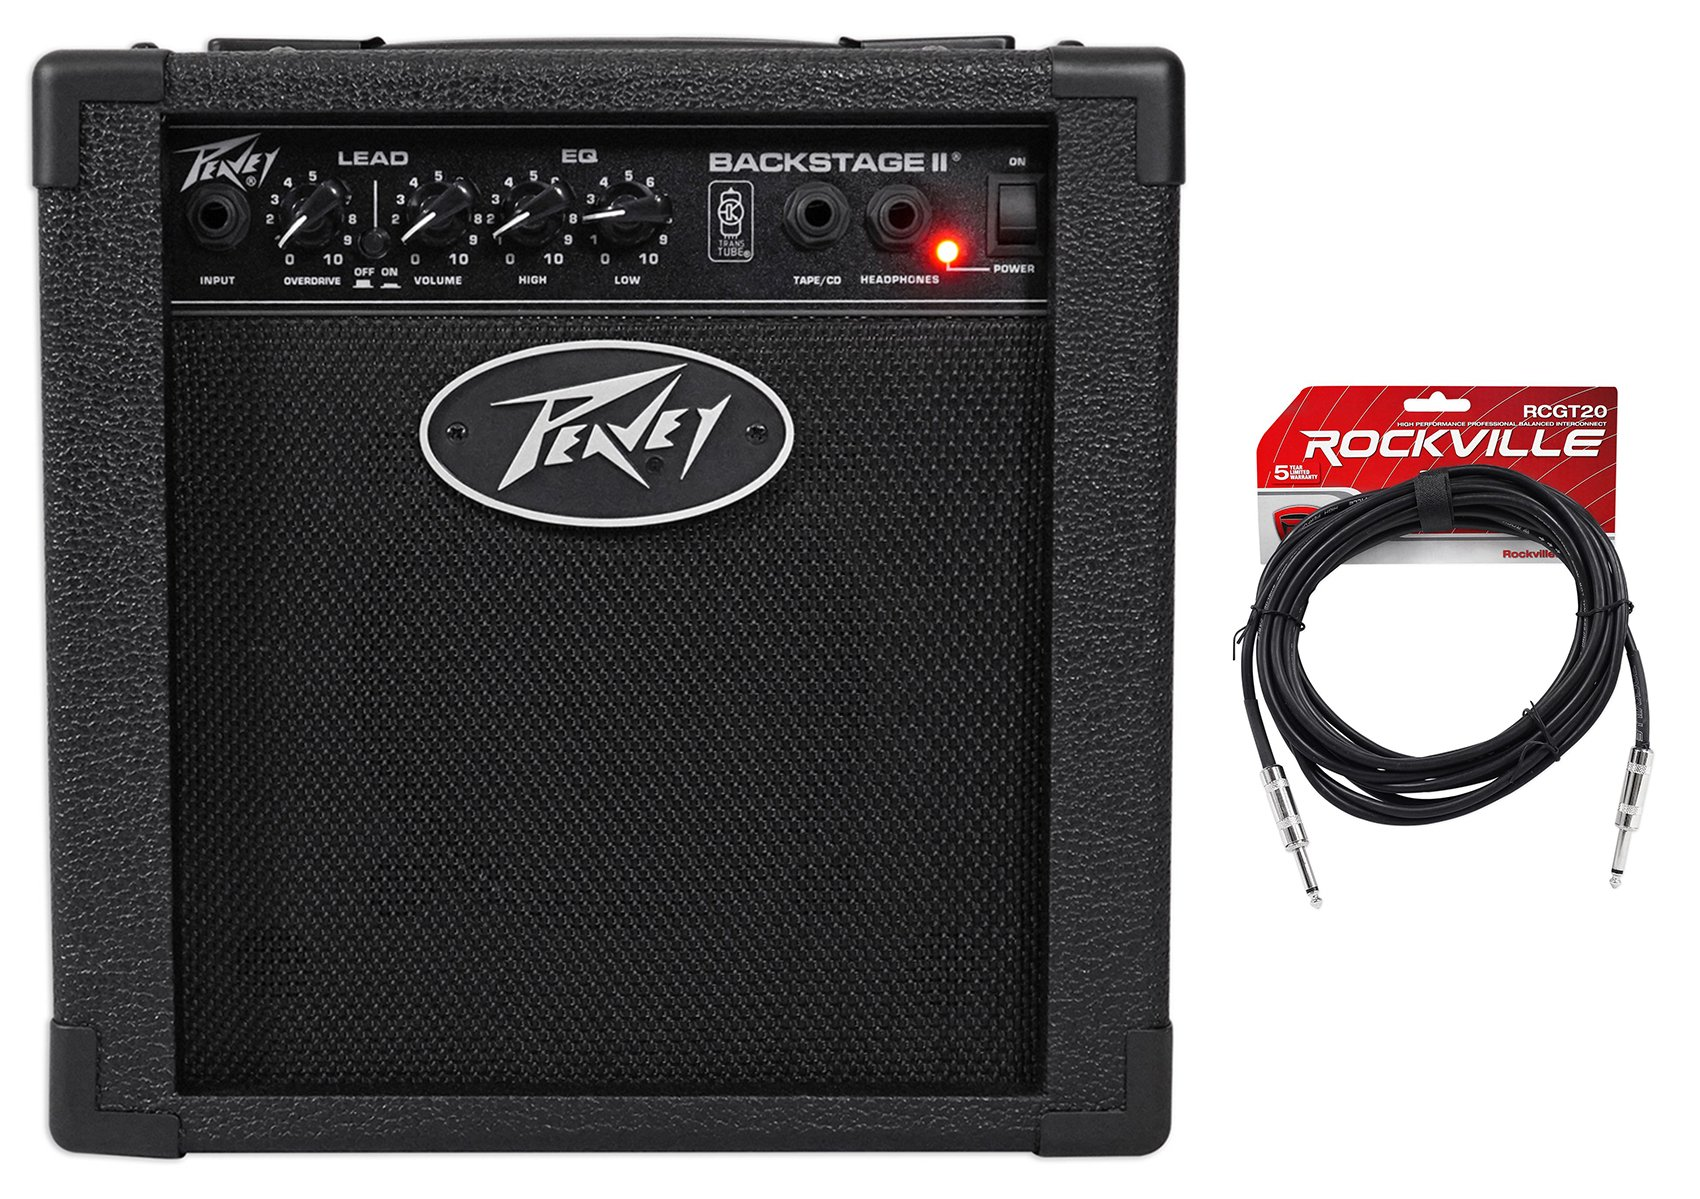 Peavey Backstage 10w Combo Guitar Amplifier+2 Switchable Channels + Guitar Cable by Peavey